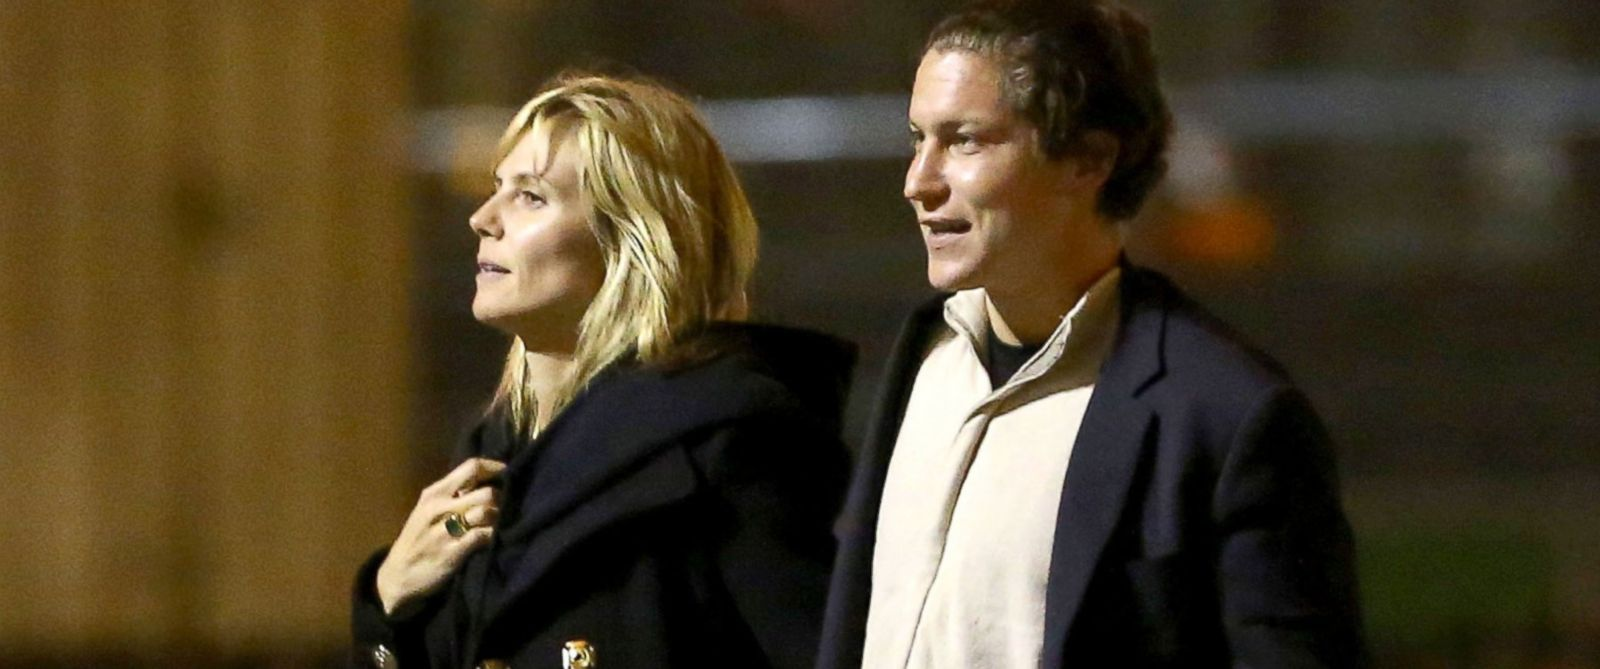 PHOTO: Heidi Klum and Vito Schnabel stroll near the Eiffel Tower in Paris, March 17, 2014.